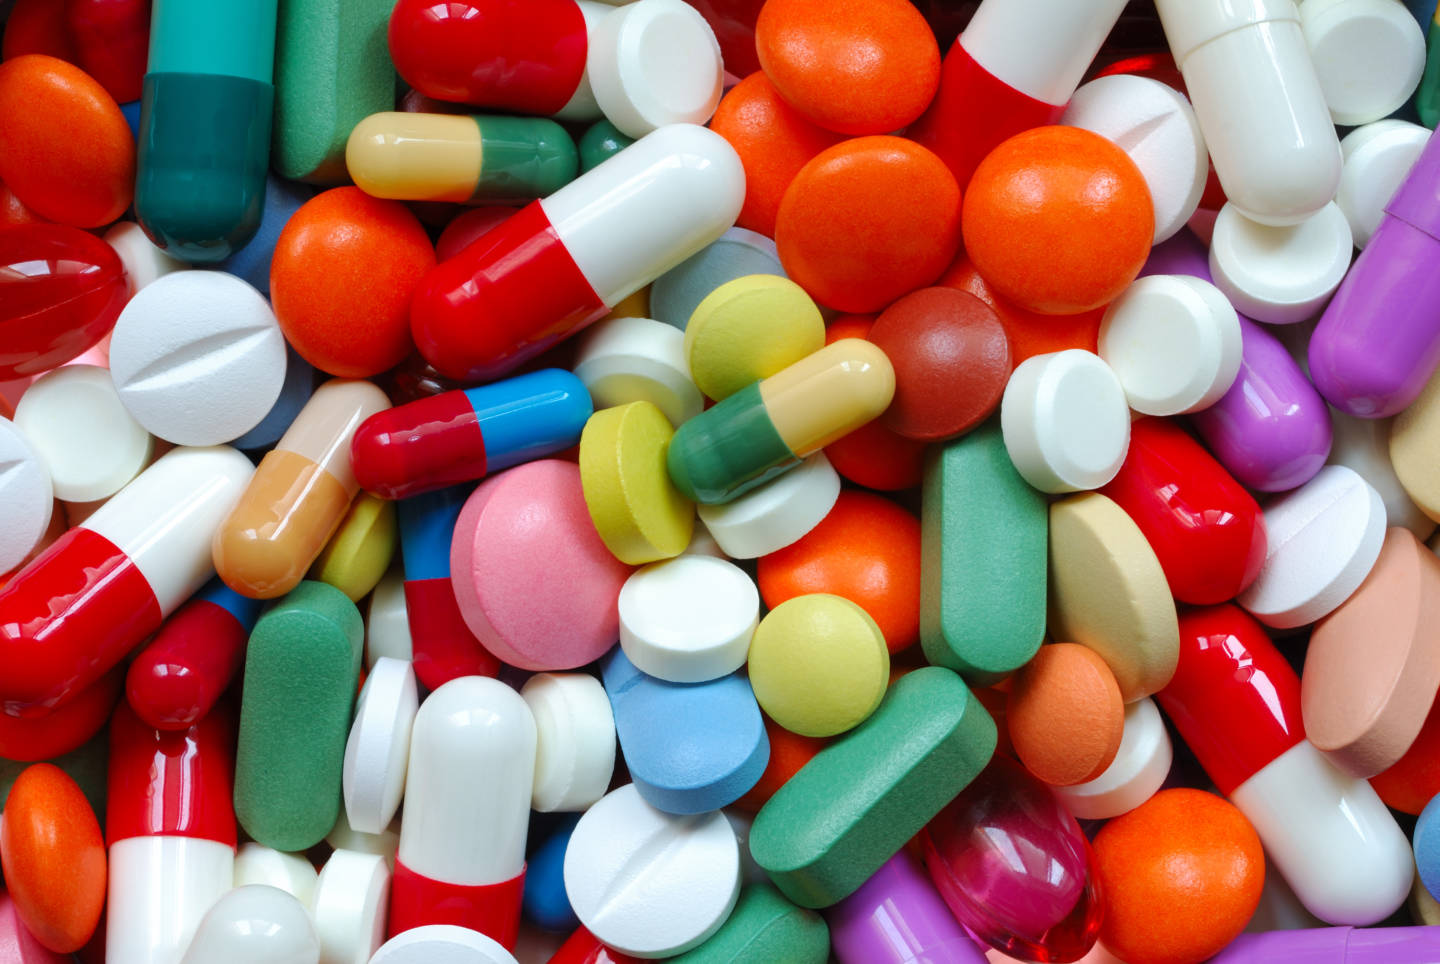 Half of Americans Take Prescription Drugs That Could Lead to Addiction